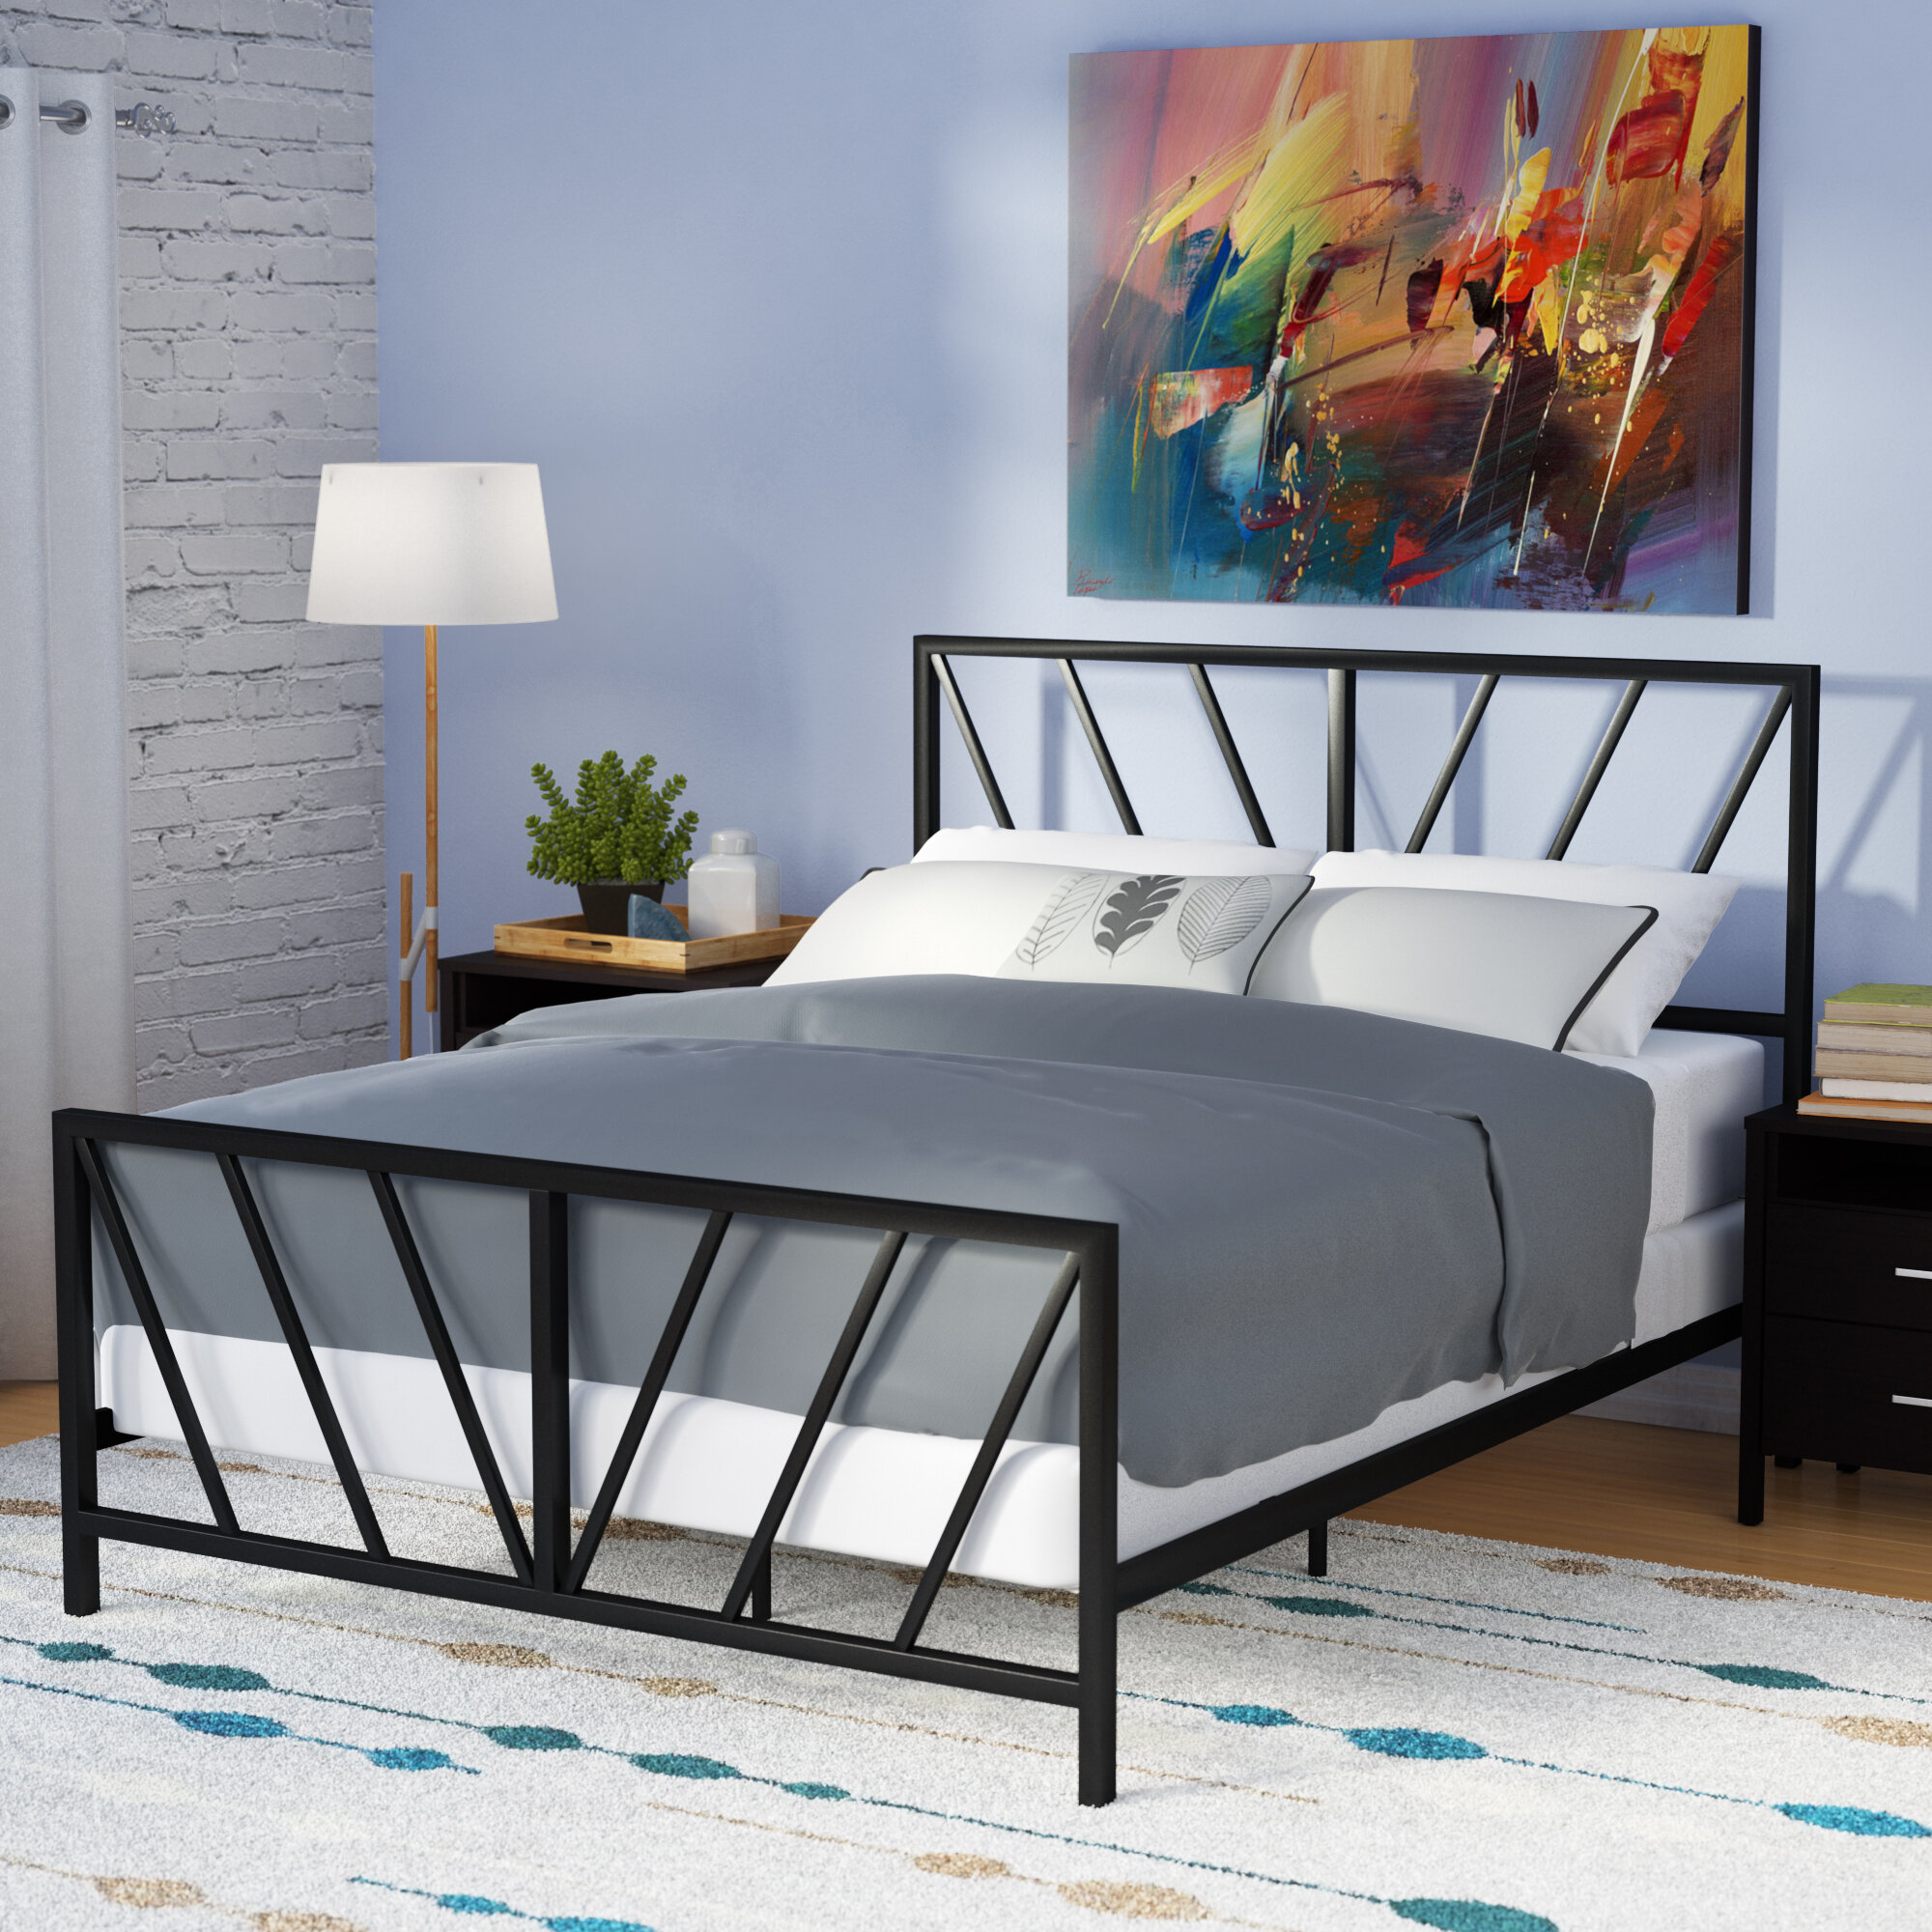 Reese patterned queen panel bed